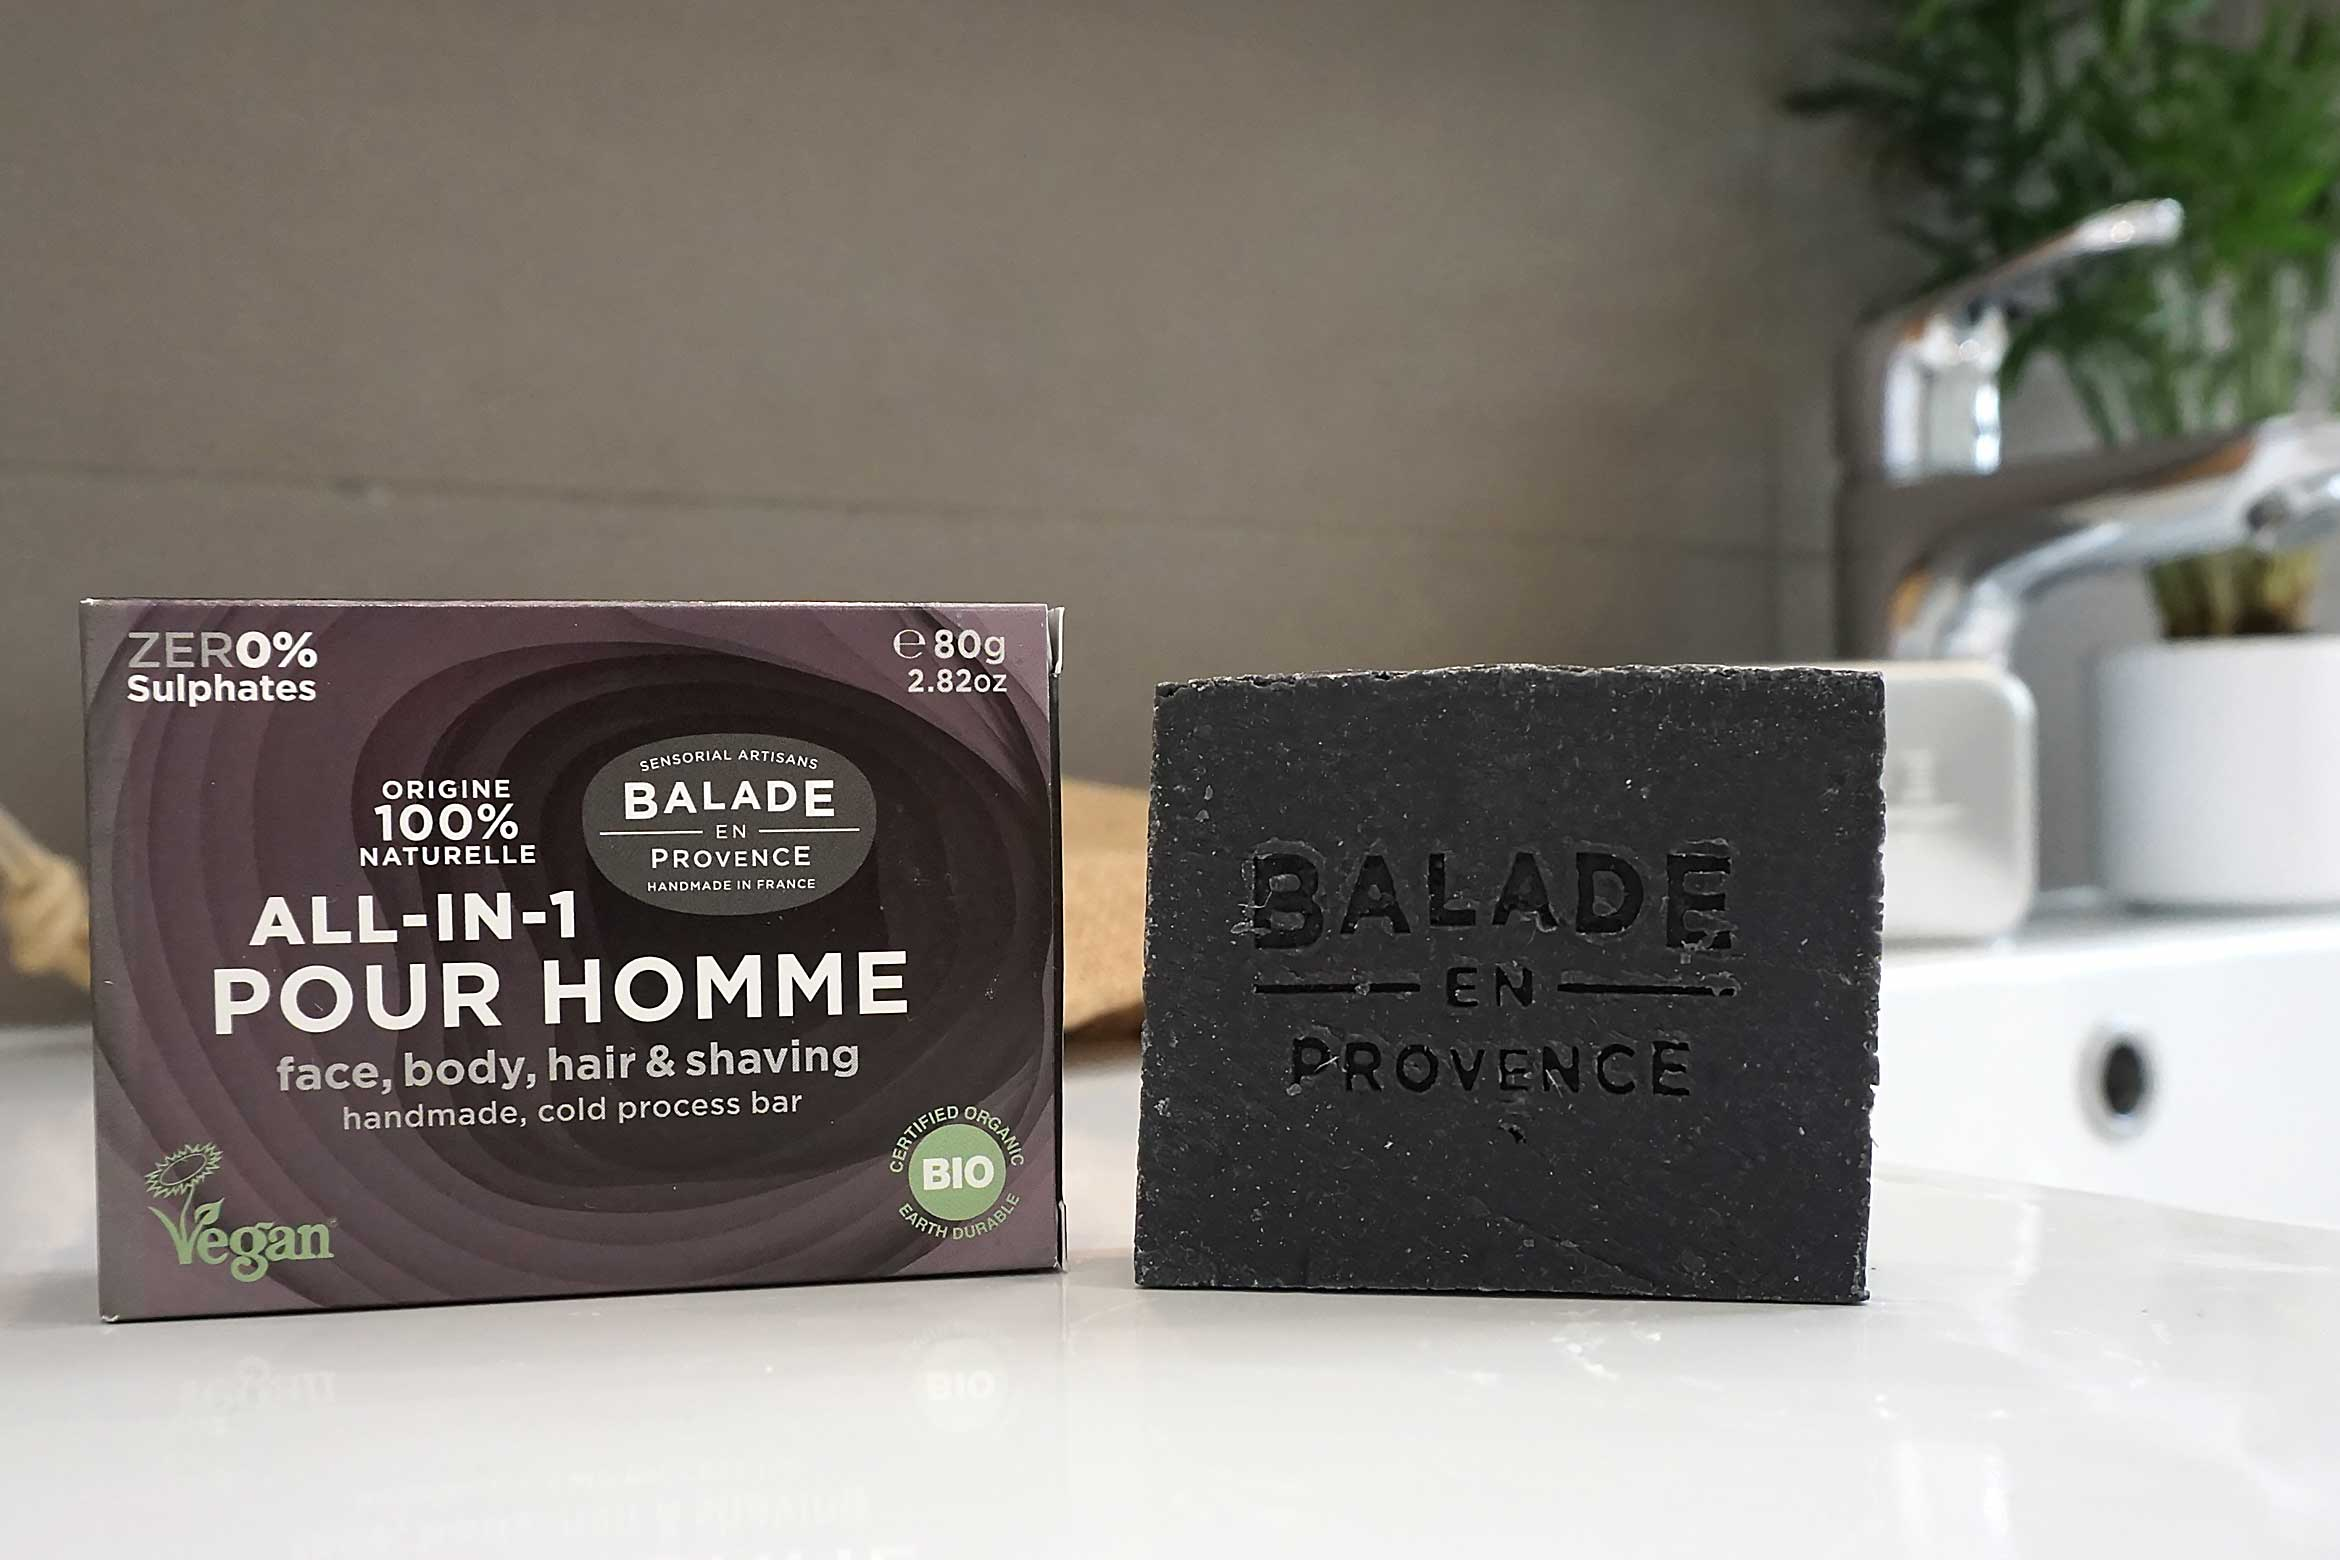 balade en provence all in 1 pour homme review-1